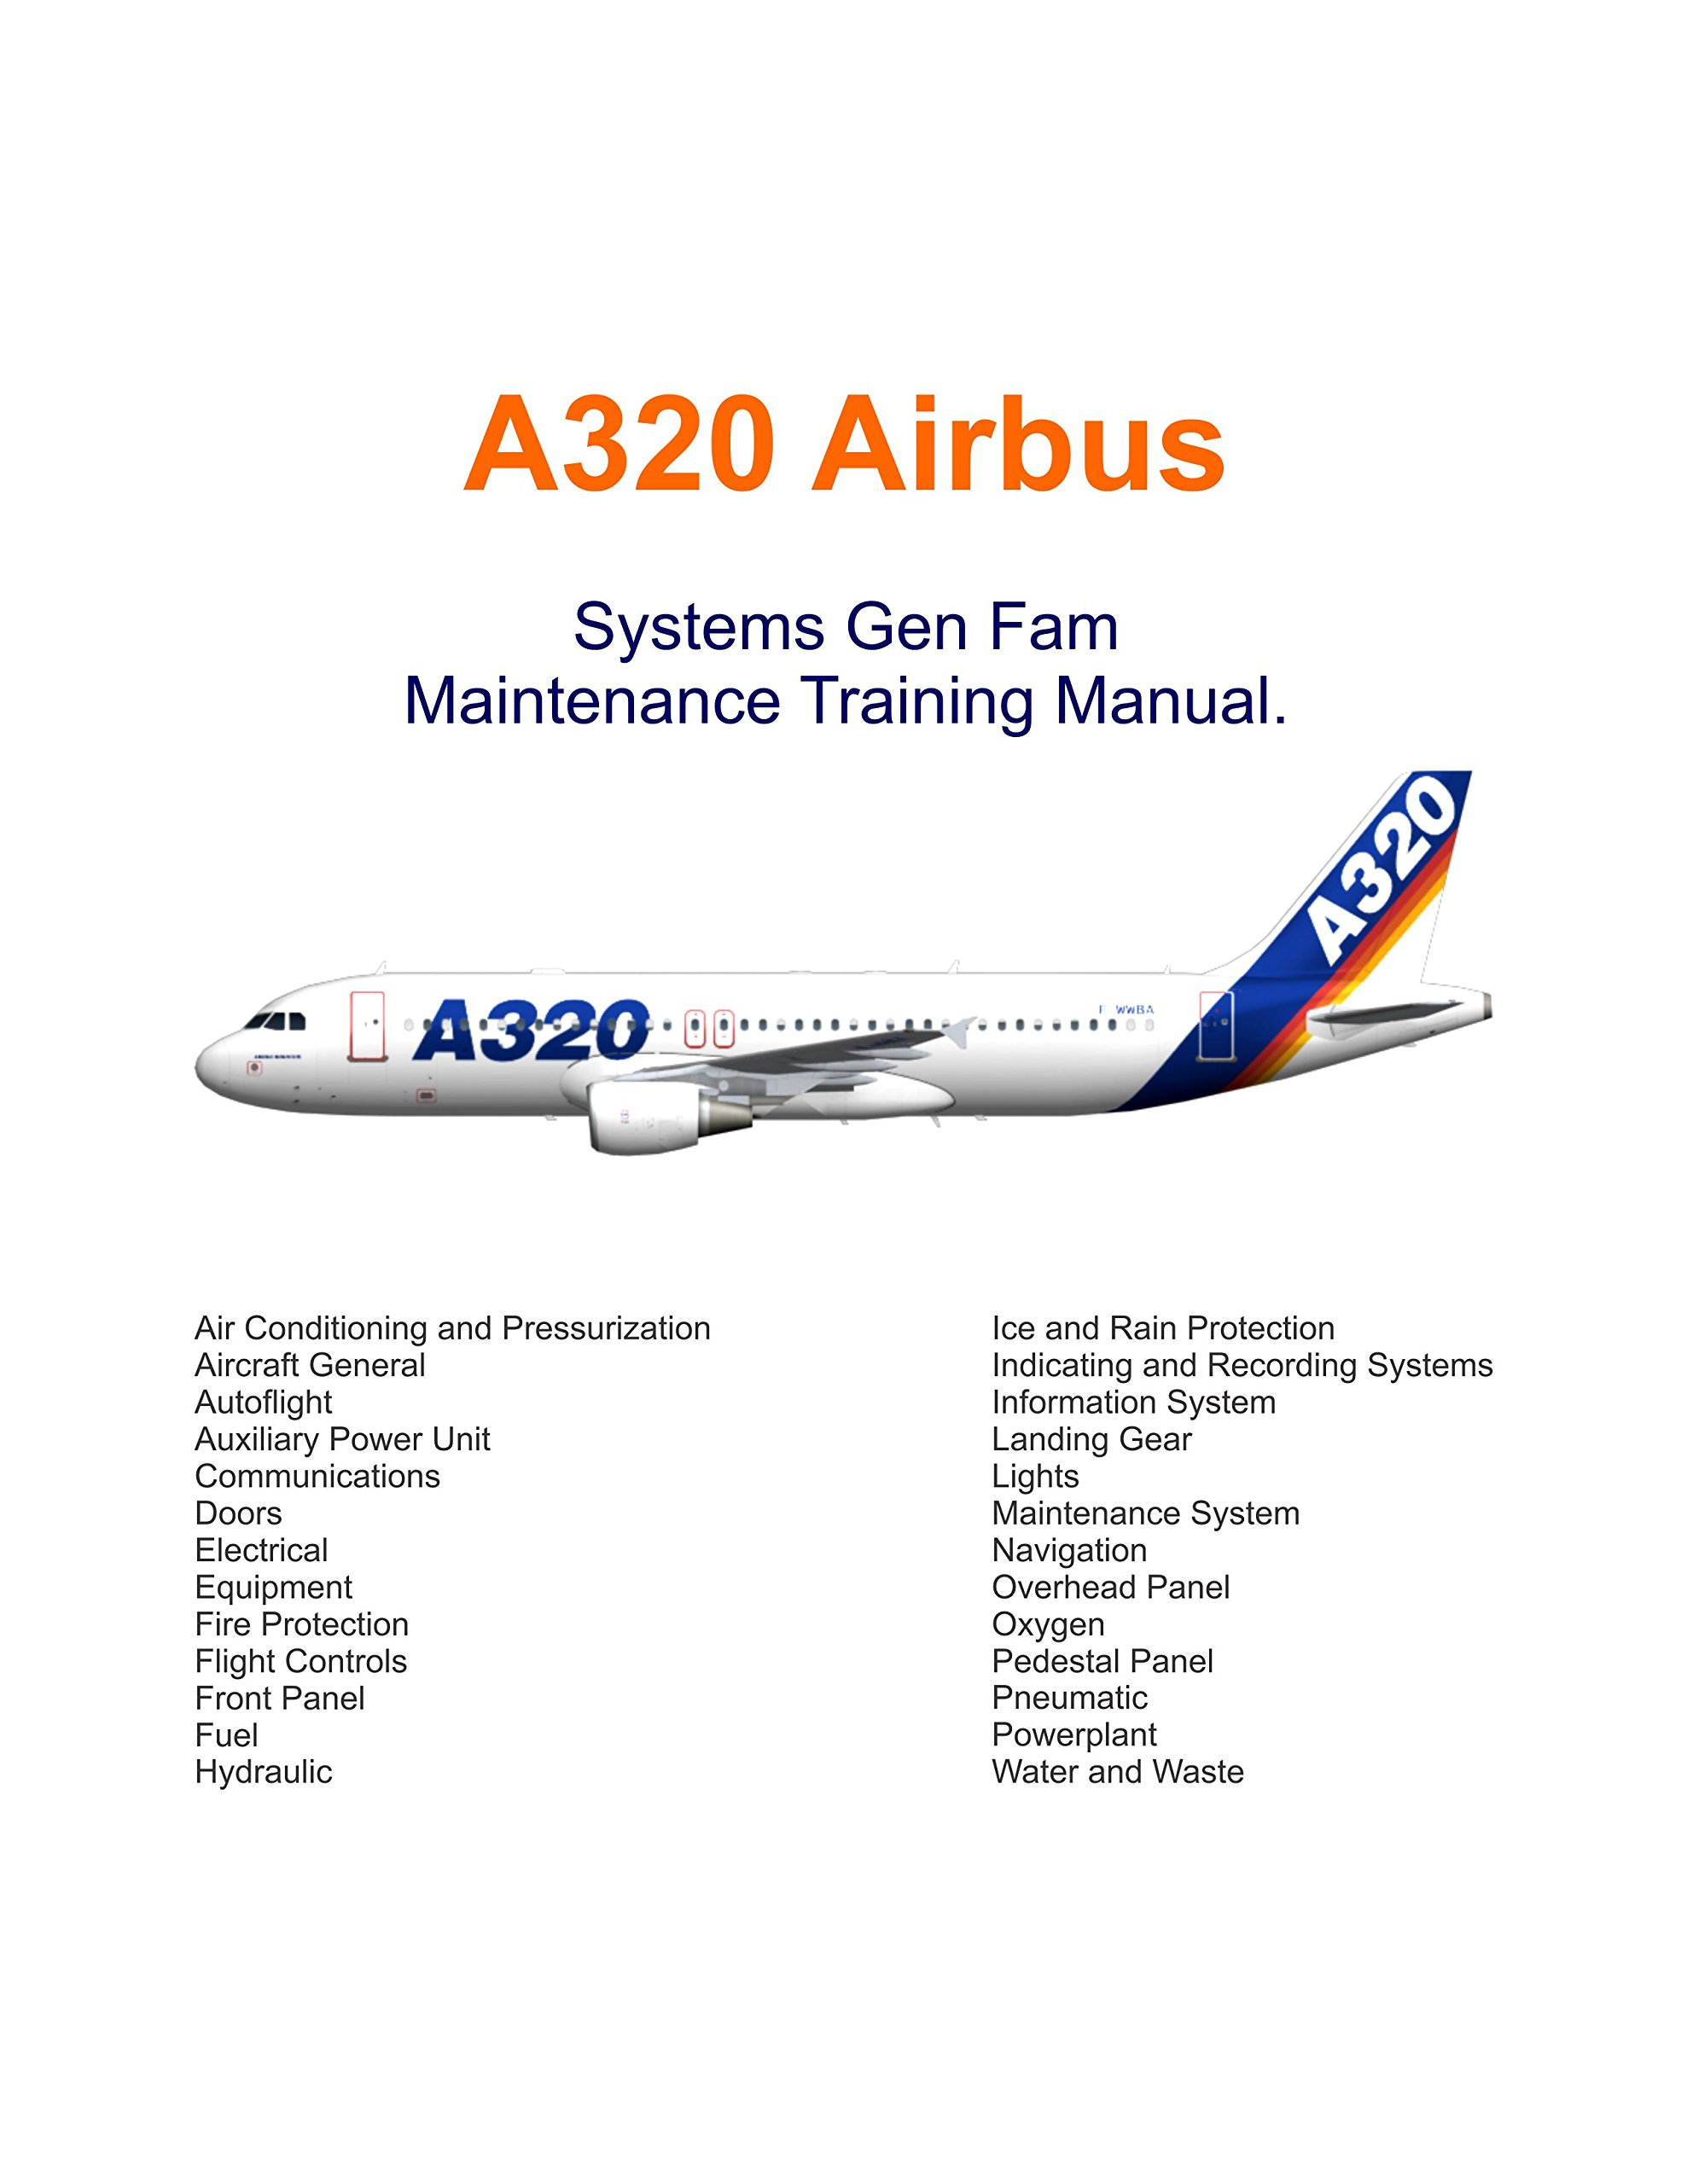 A320 Airbus Systems Gen Fam Maintenance Training Manual. [Loose Leaf]:  Airbus: Amazon.com: Books